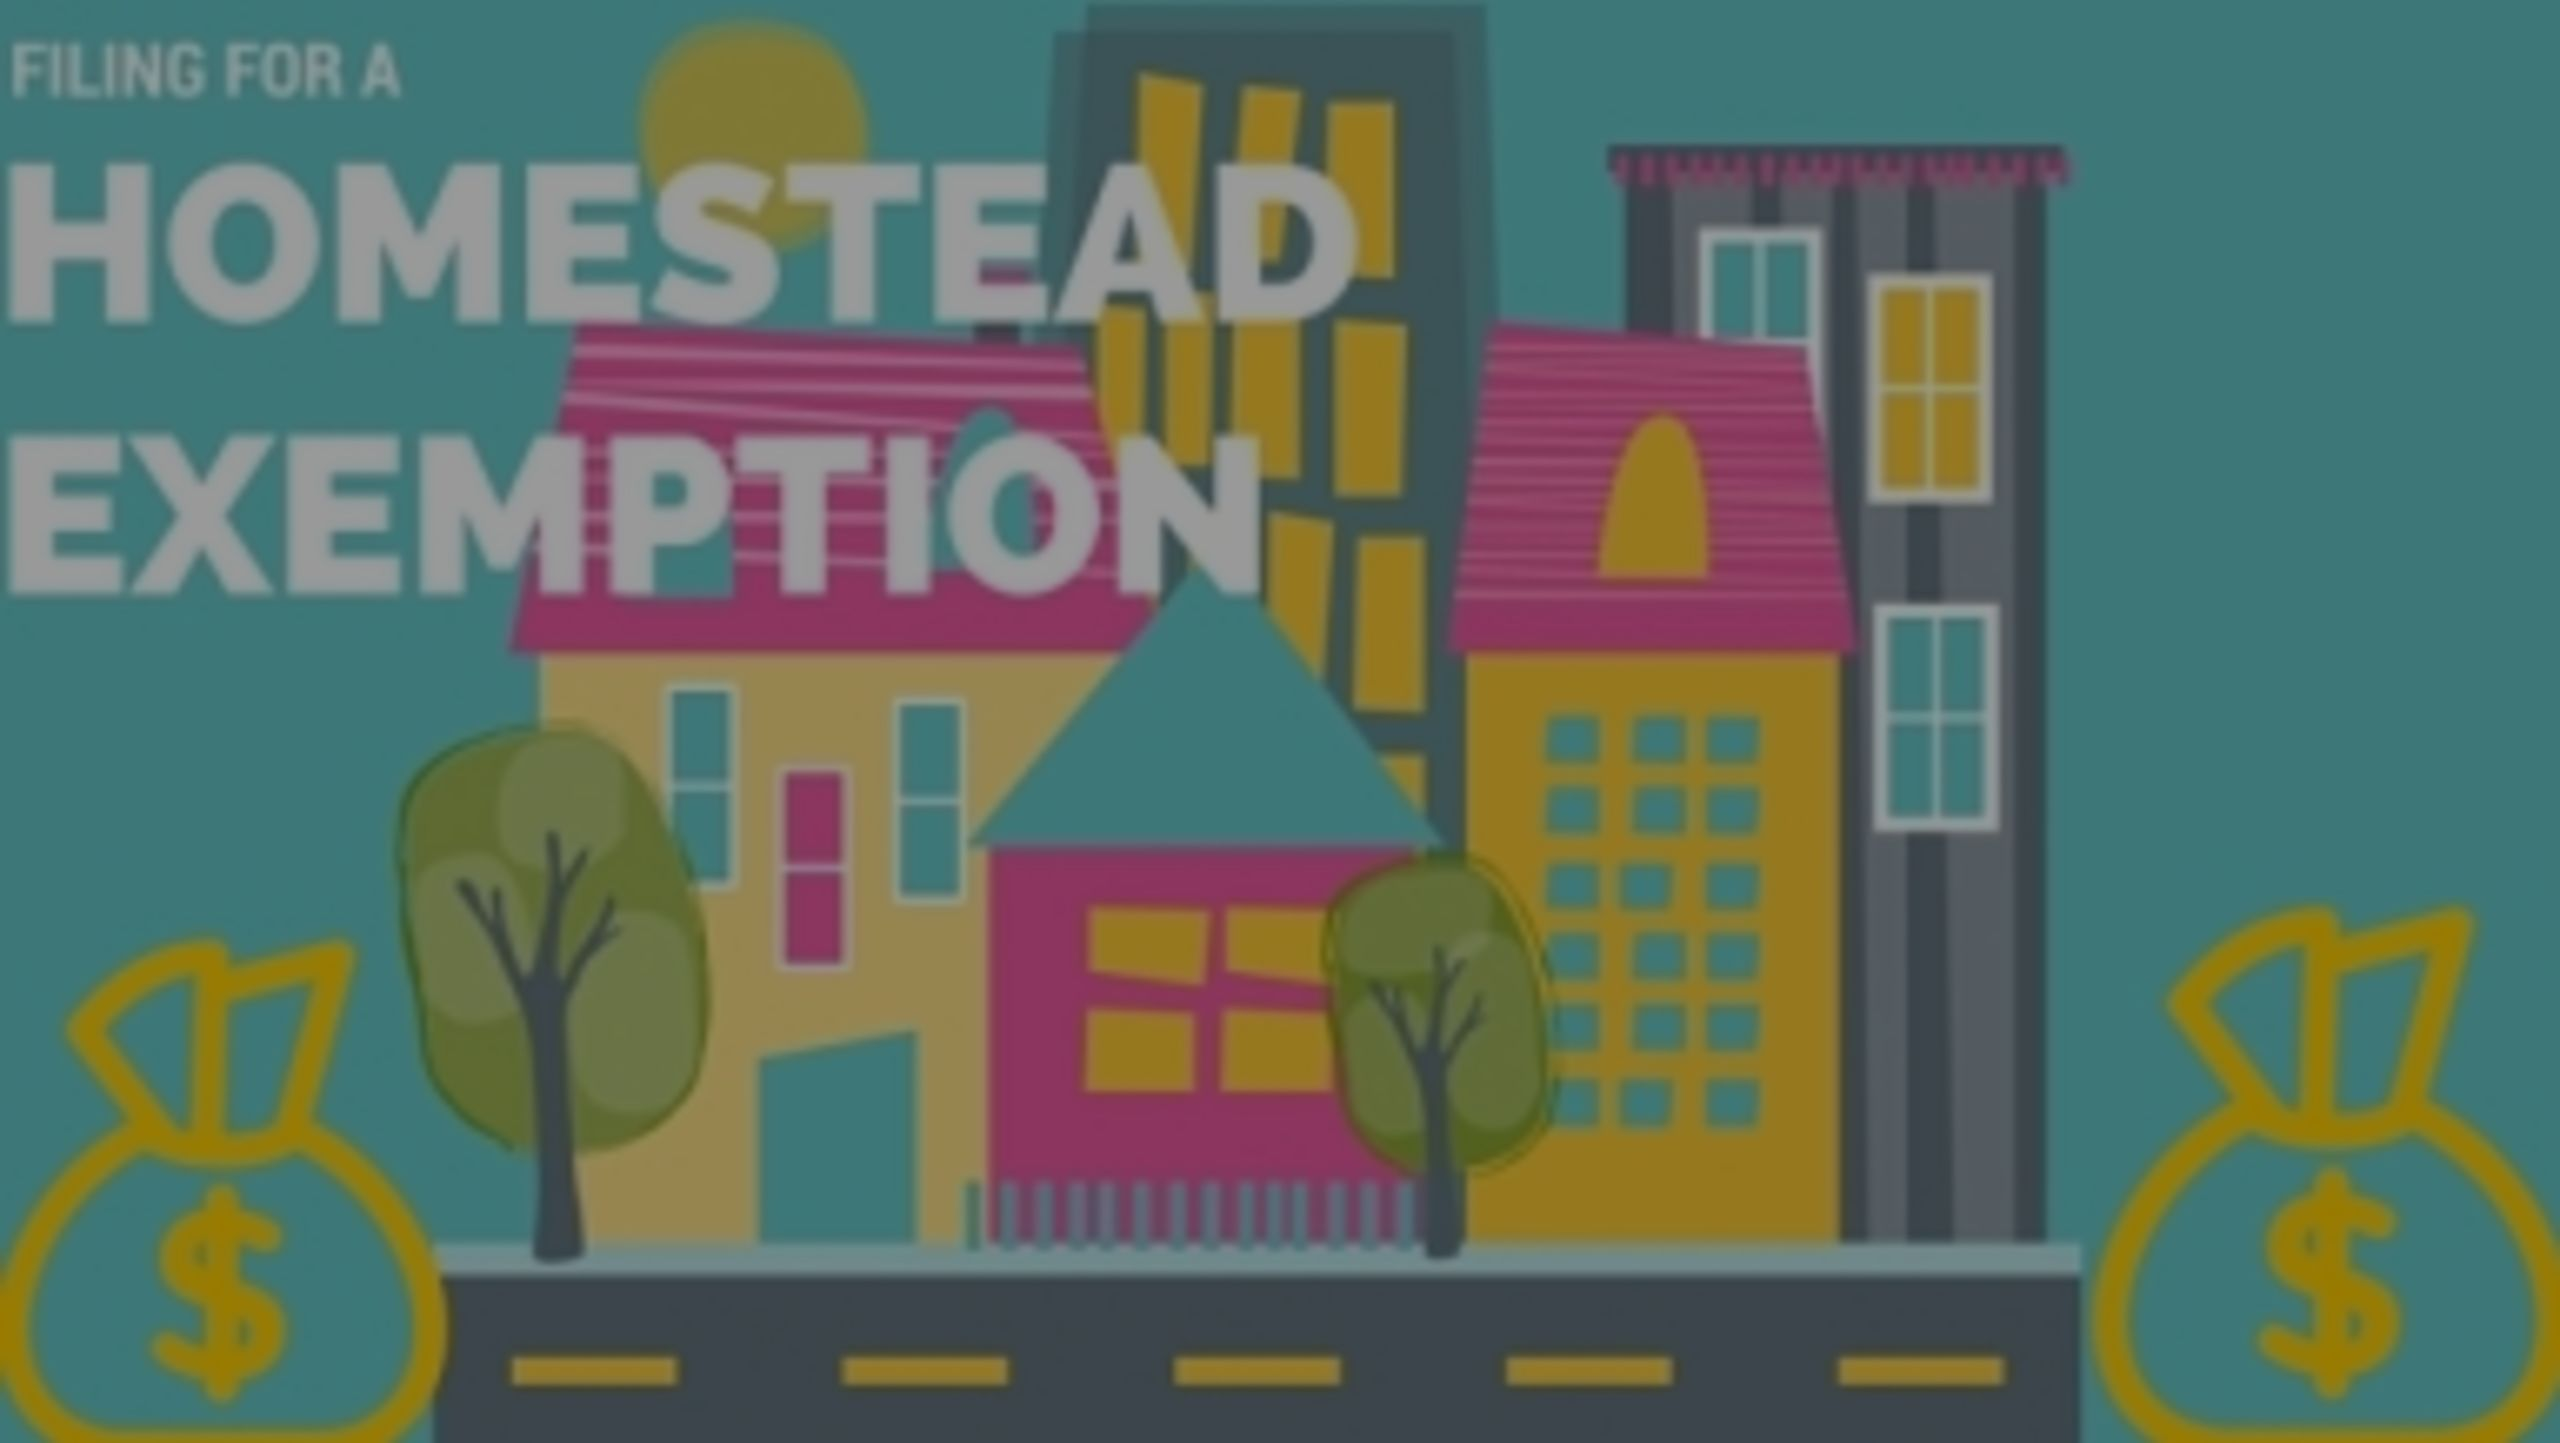 Homestead Exemption Time